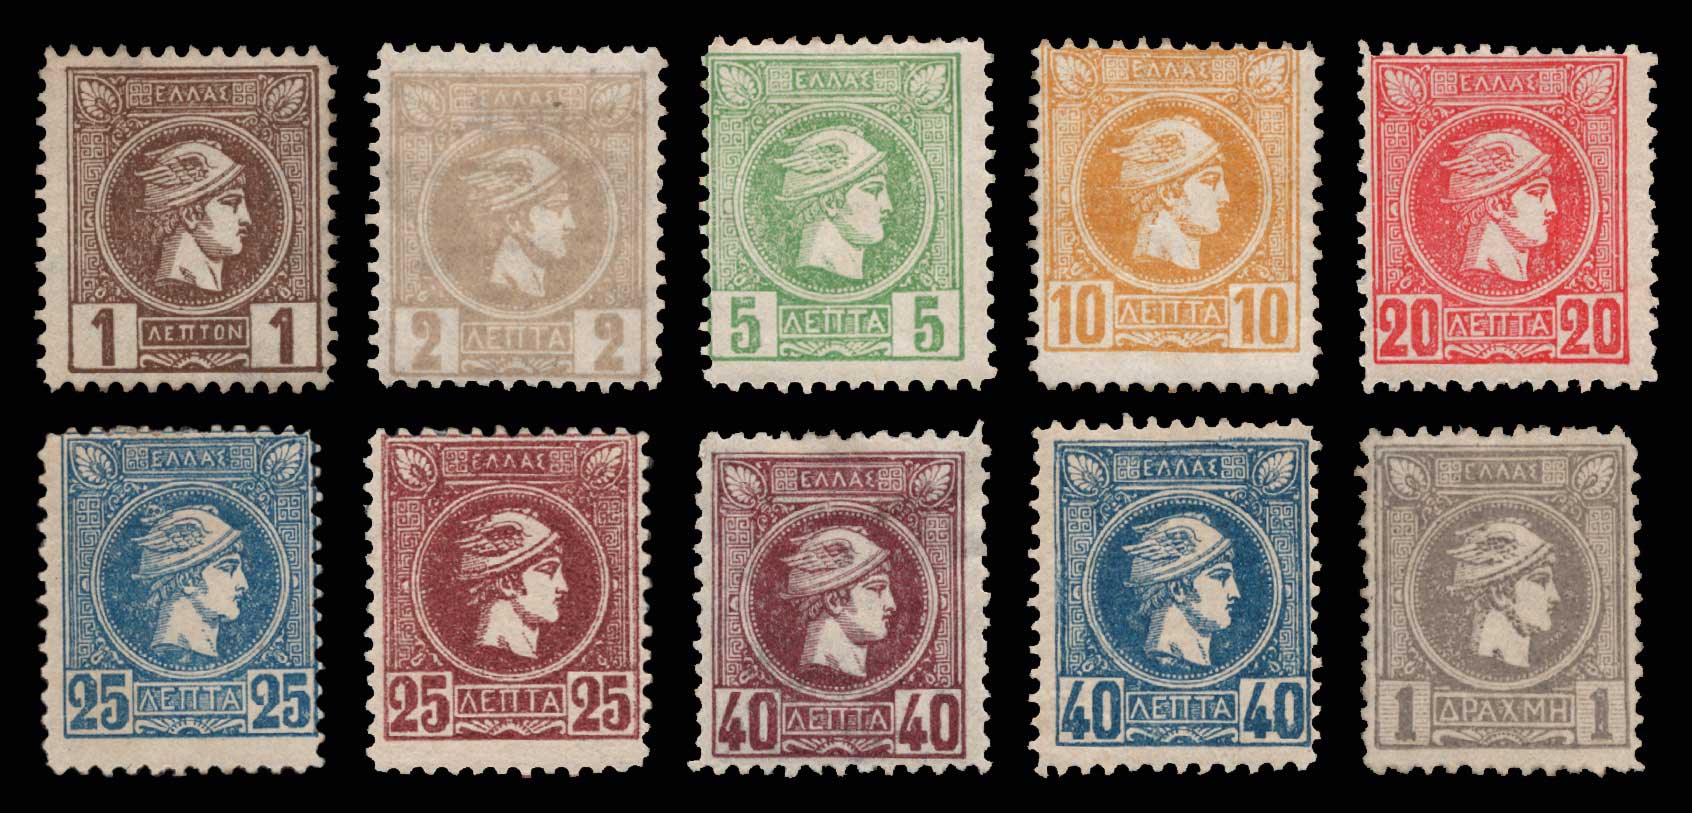 Lot 382 - -  SMALL HERMES HEAD ATHENSPRINTING - 2nd PERIOD -  Athens Auctions Public Auction 76 General Stamp Sale